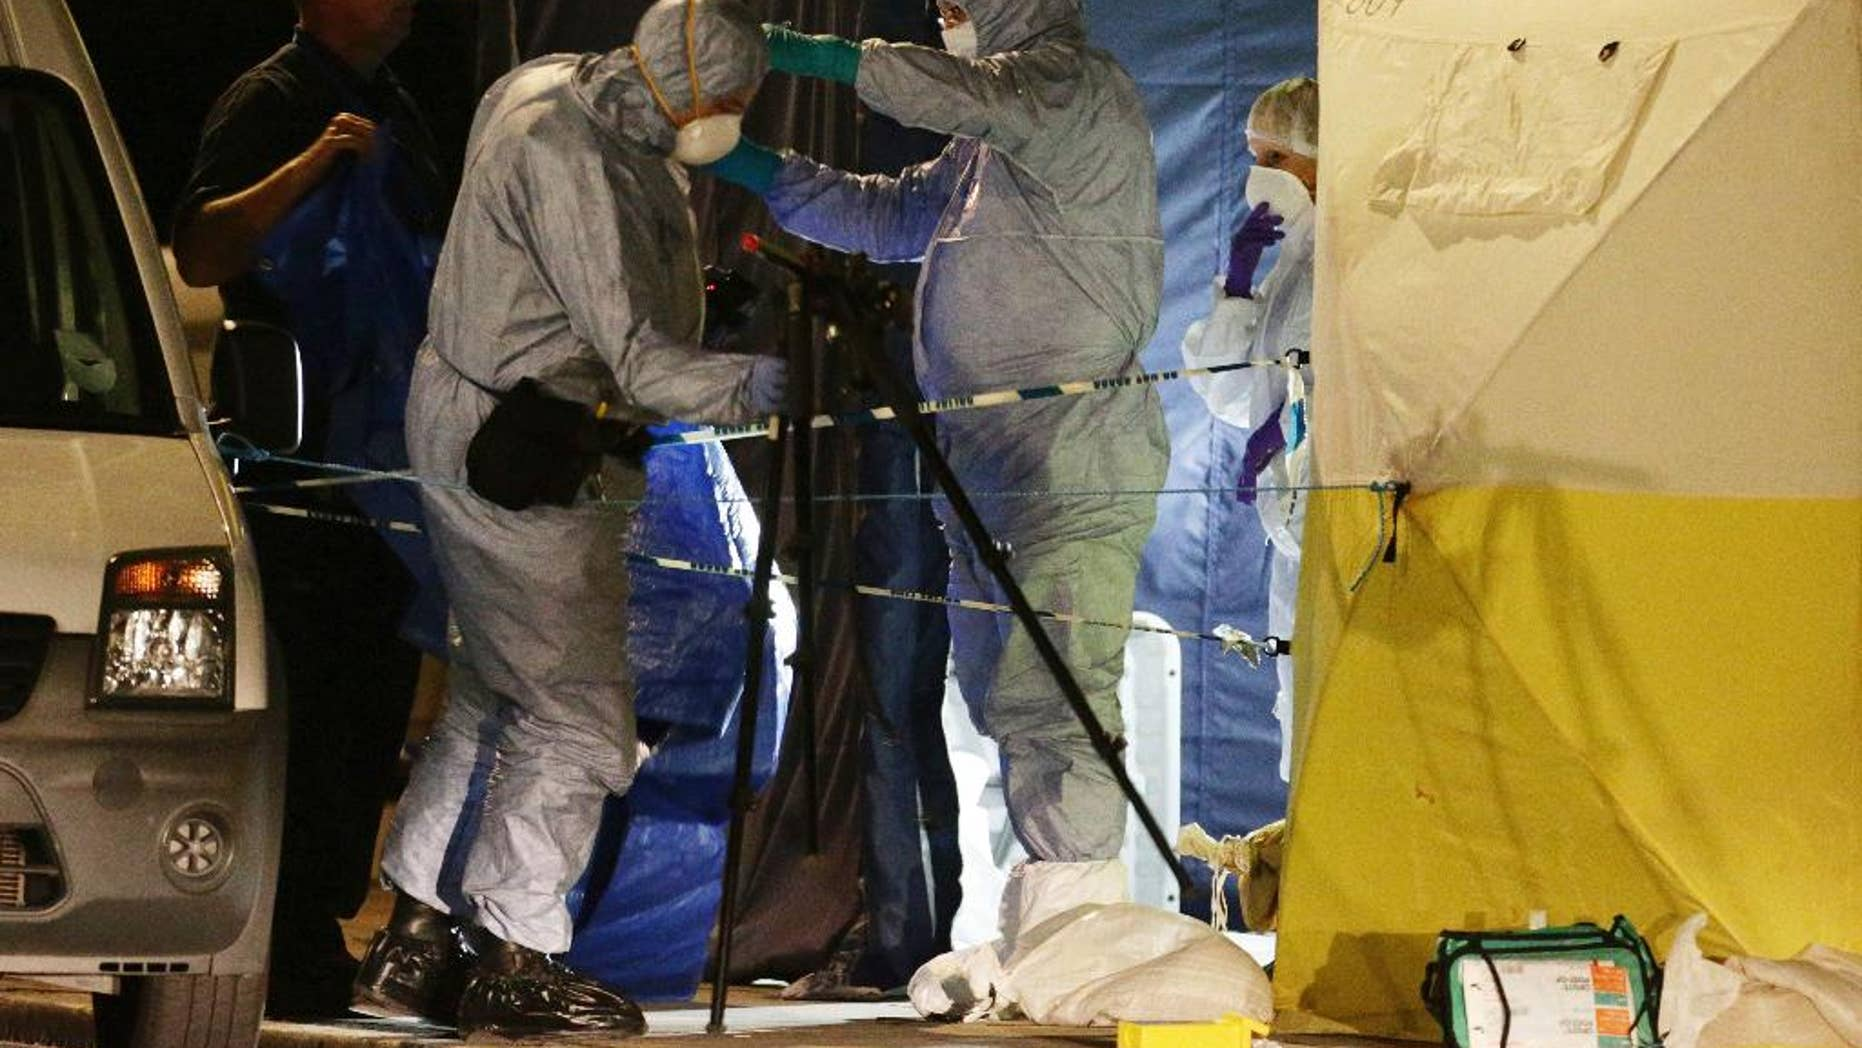 FILE - In this Aug. 4, 2016 file photo, police forensic officers at work in Russell Square, central London, after a knife attack. A teenager has admitted killing a retired Florida teacher and injuring five other people in a stabbing rampage near the British Museum in London. Somali-Norwegian Zakaria Bulhan, 19, pleaded guilty to manslaughter by diminished responsibility in the Aug. 3 slaying of 64-year-old Darlene Horton. He also pleaded guilty to five counts of wounding during a hearing Monday, Feb. 6, 2017 at London's Central Criminal Court. (Yui Mok/PA via AP, file)